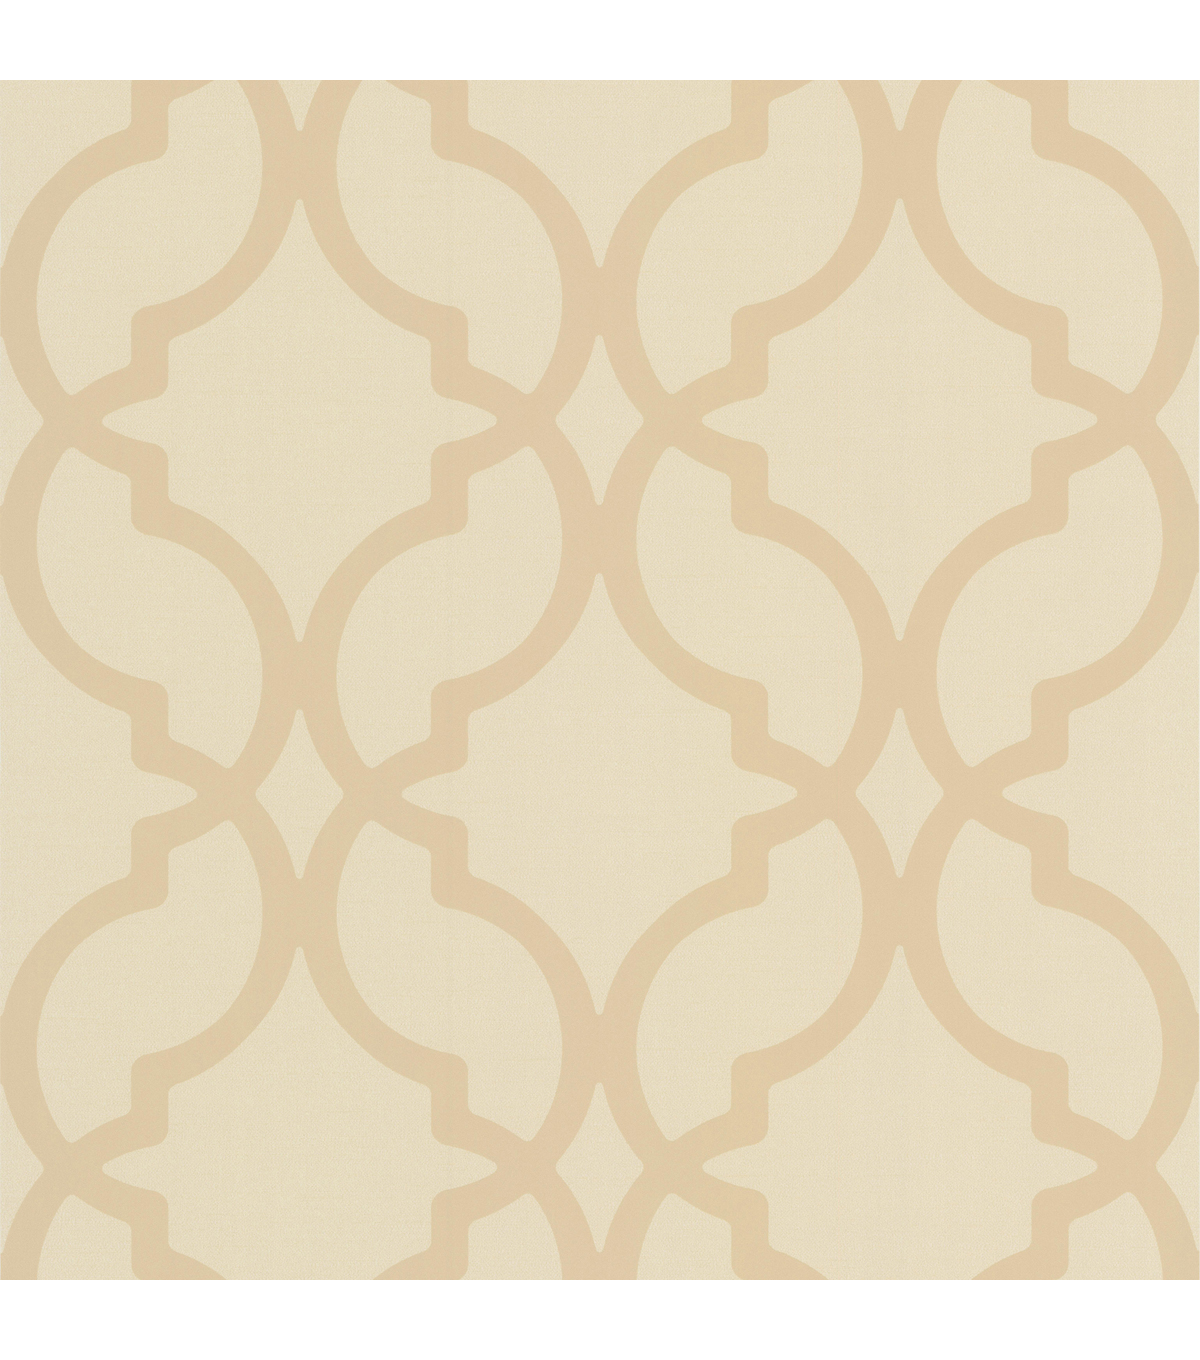 Harira Beige Moroccan Trellis Wallpaper Sample